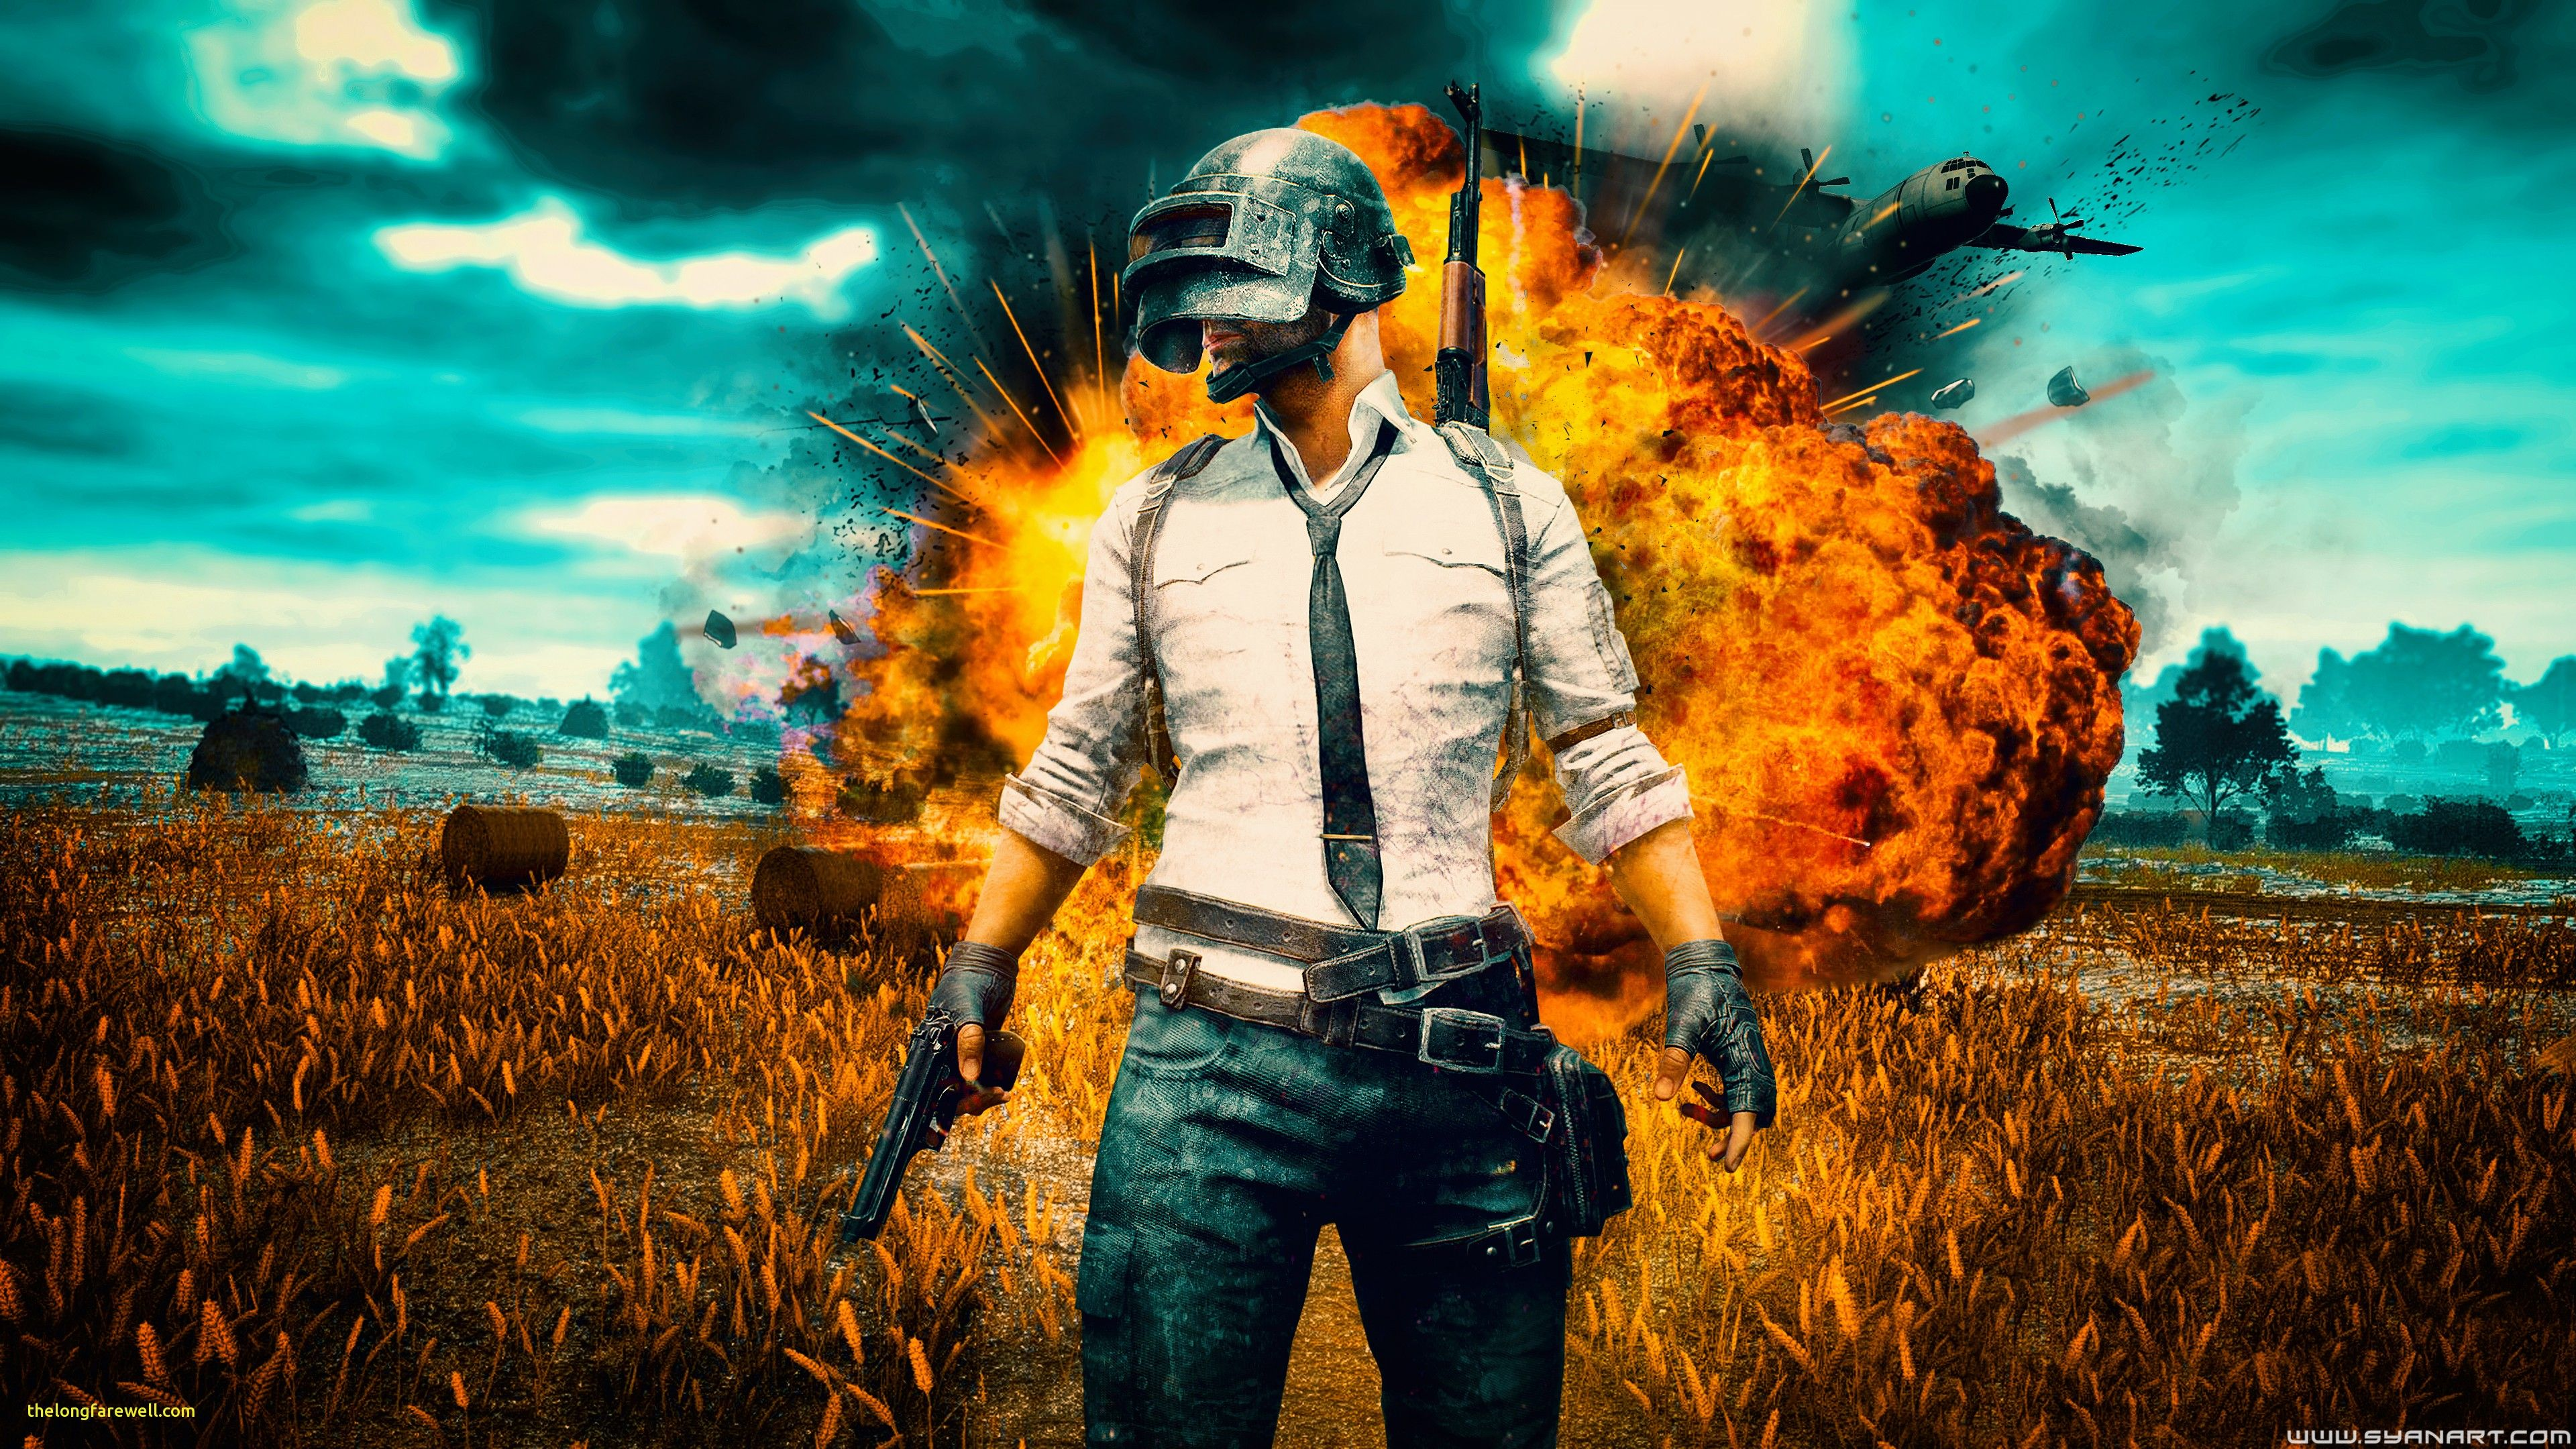 wp3276769 pubg 4k wallpapers - Player Unknown's Battlegrounds (PUBG) 4K - Pubg wallpaper phone, pubg wallpaper iphone, pubg wallpaper 1920x1080 hd, pubg hd wallpapers, pubg 4k wallpapers, Player Unknown's Battlegrounds 4k wallpapers